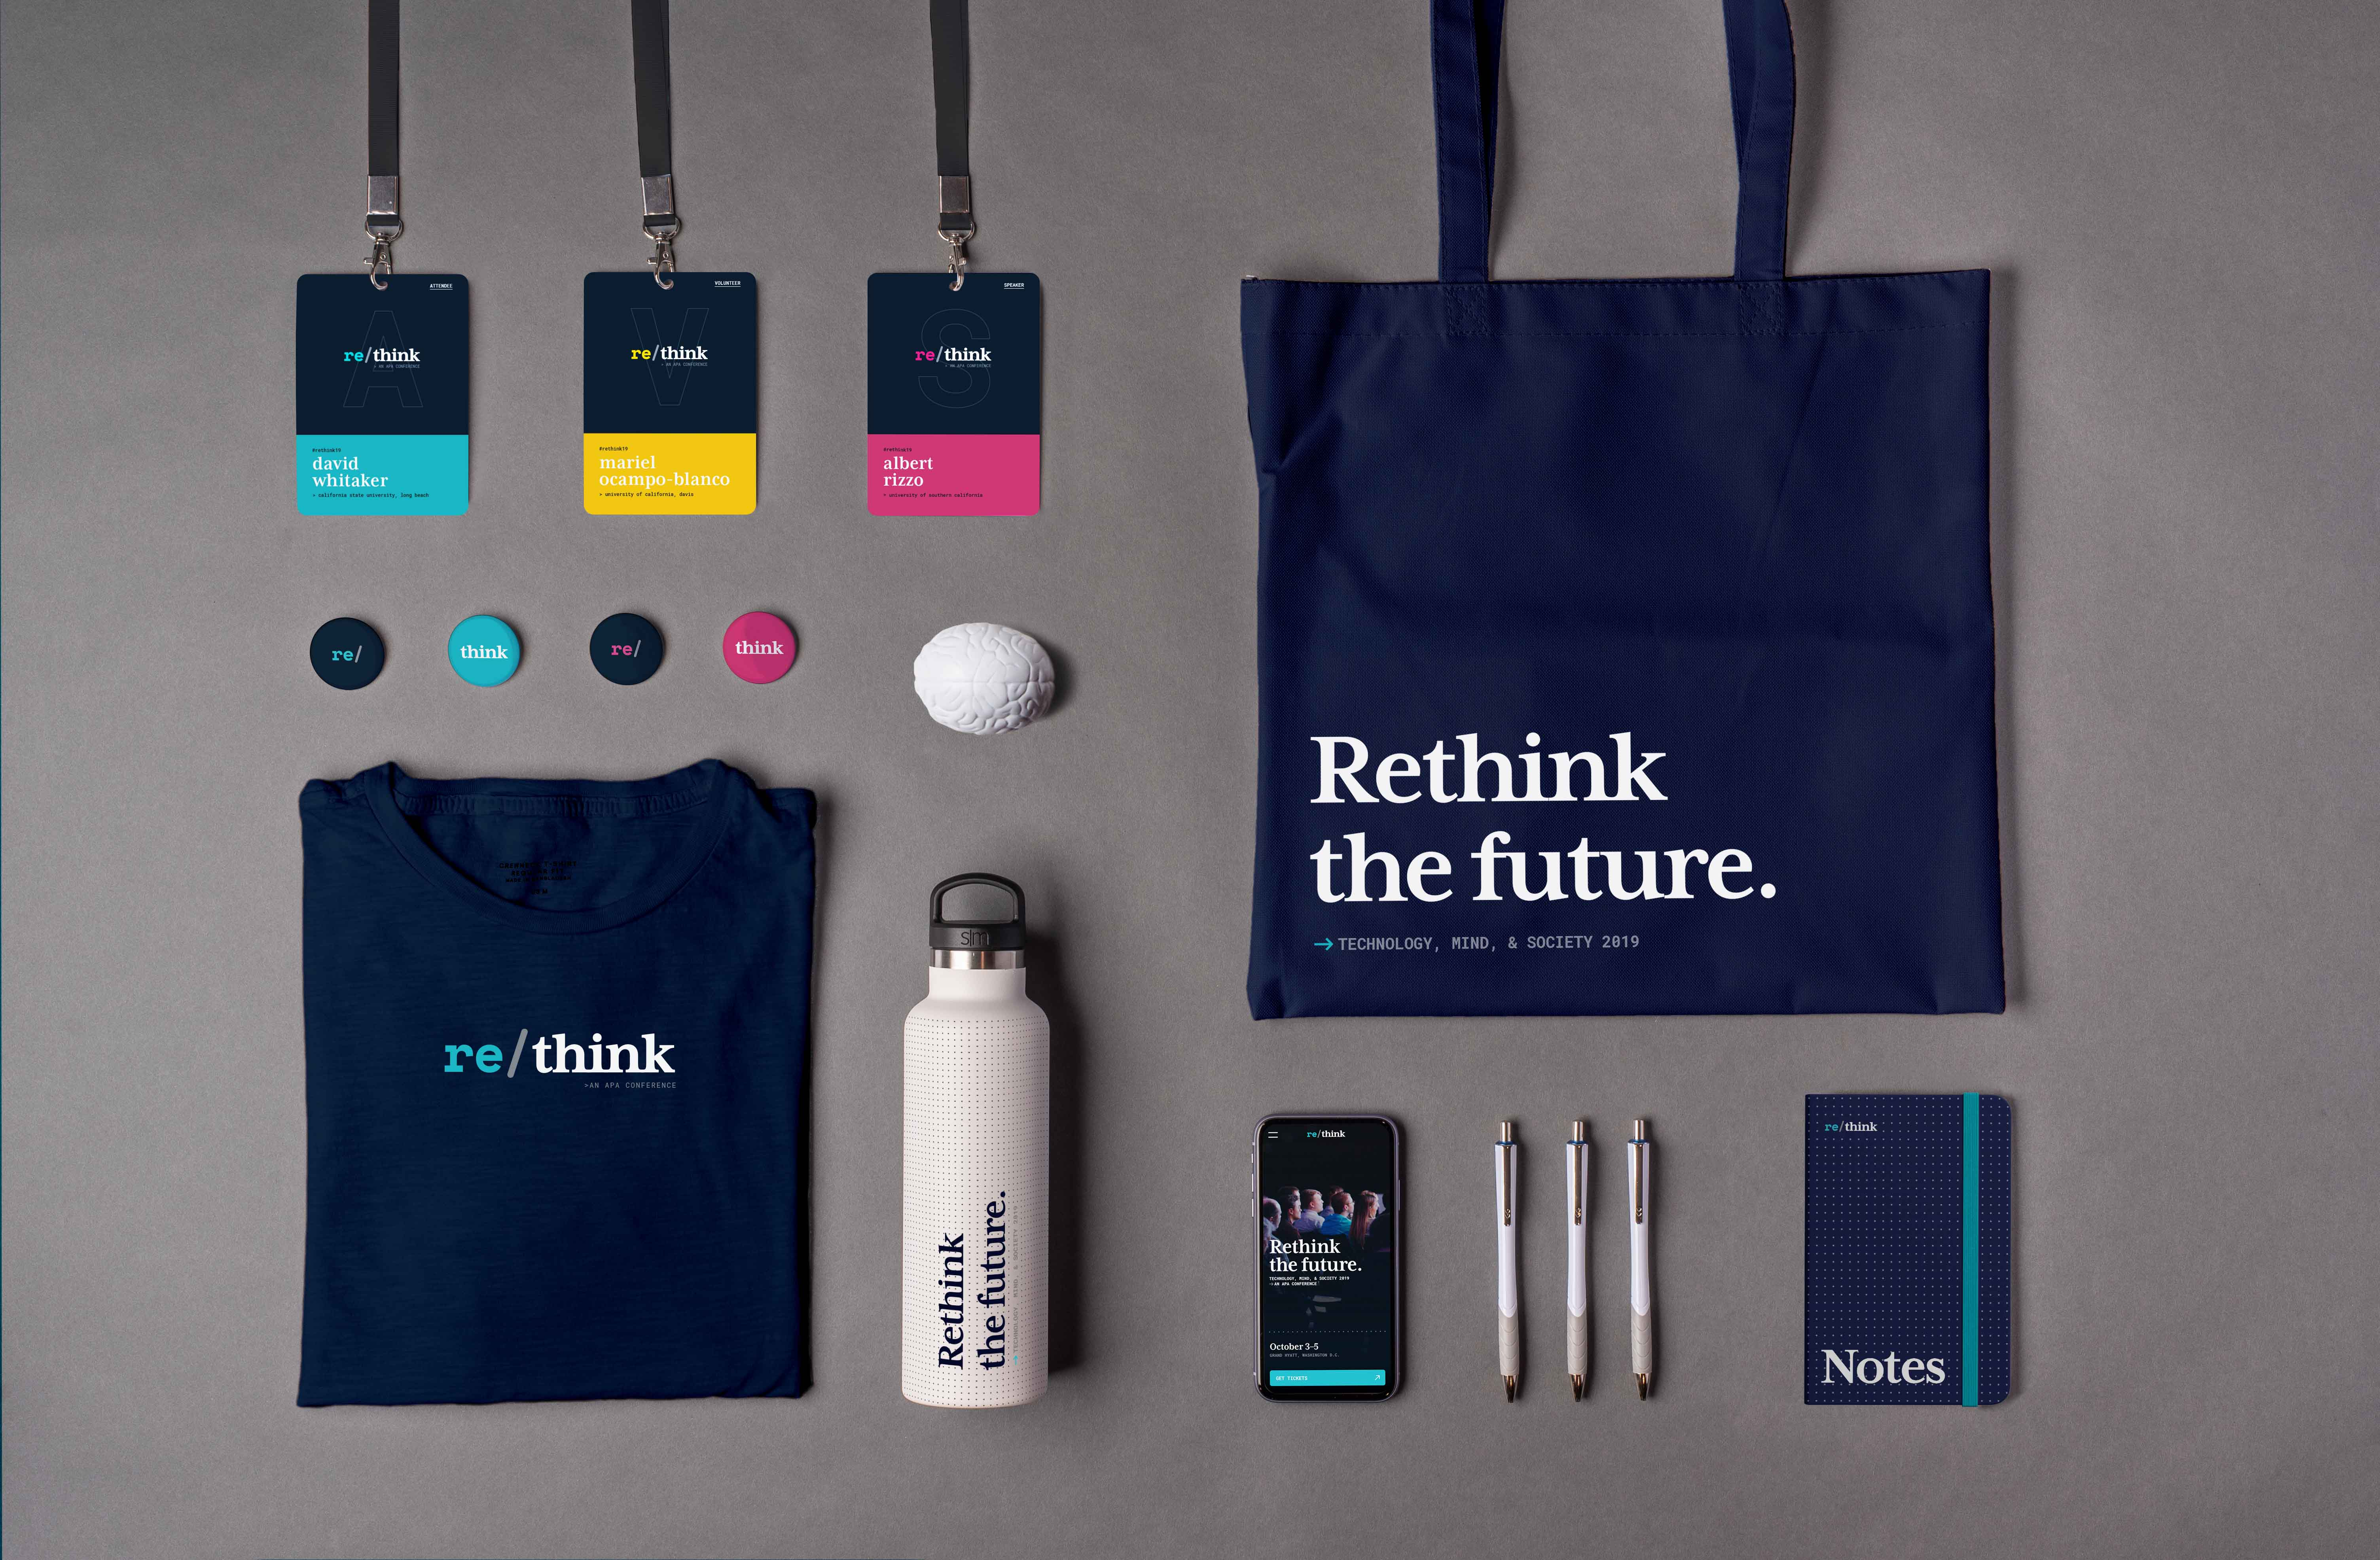 An overview shot of the conference collateral, showing  name badges, buttons, t-shirt, water bottle, tote bag, and notebook